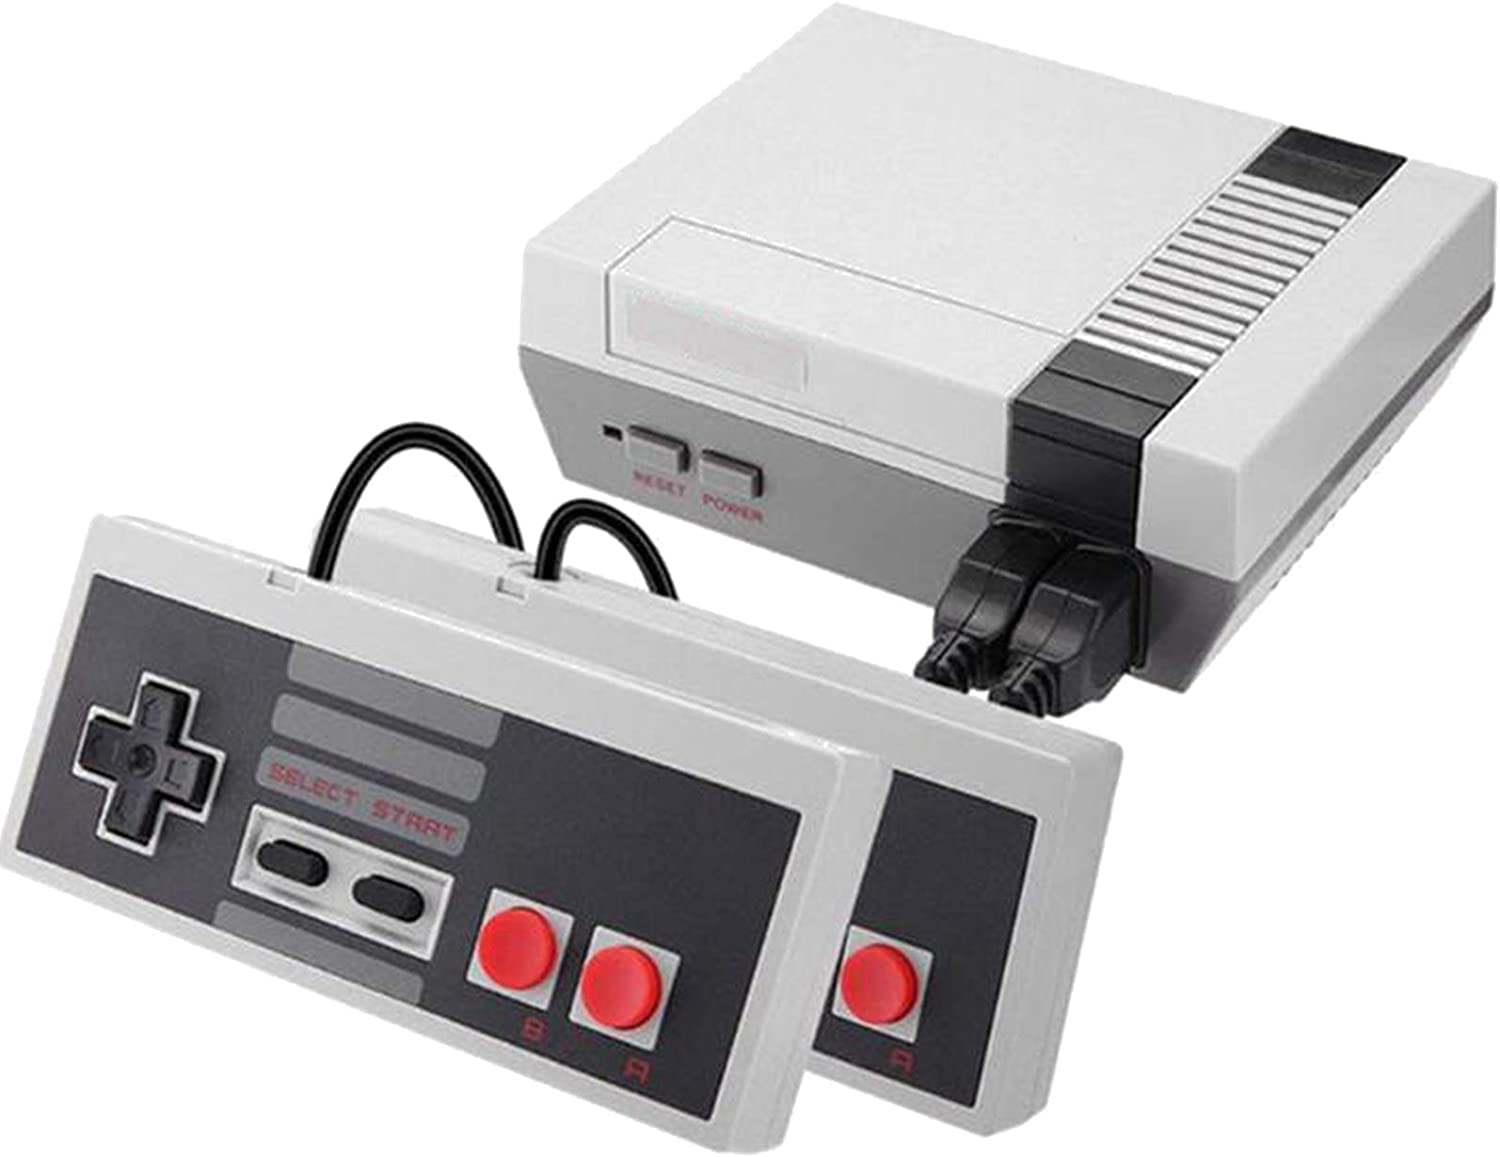 Classic Mini Retro Game Console, 8-bit Video Game Built-in 350 Games with 2 Classic Controllers